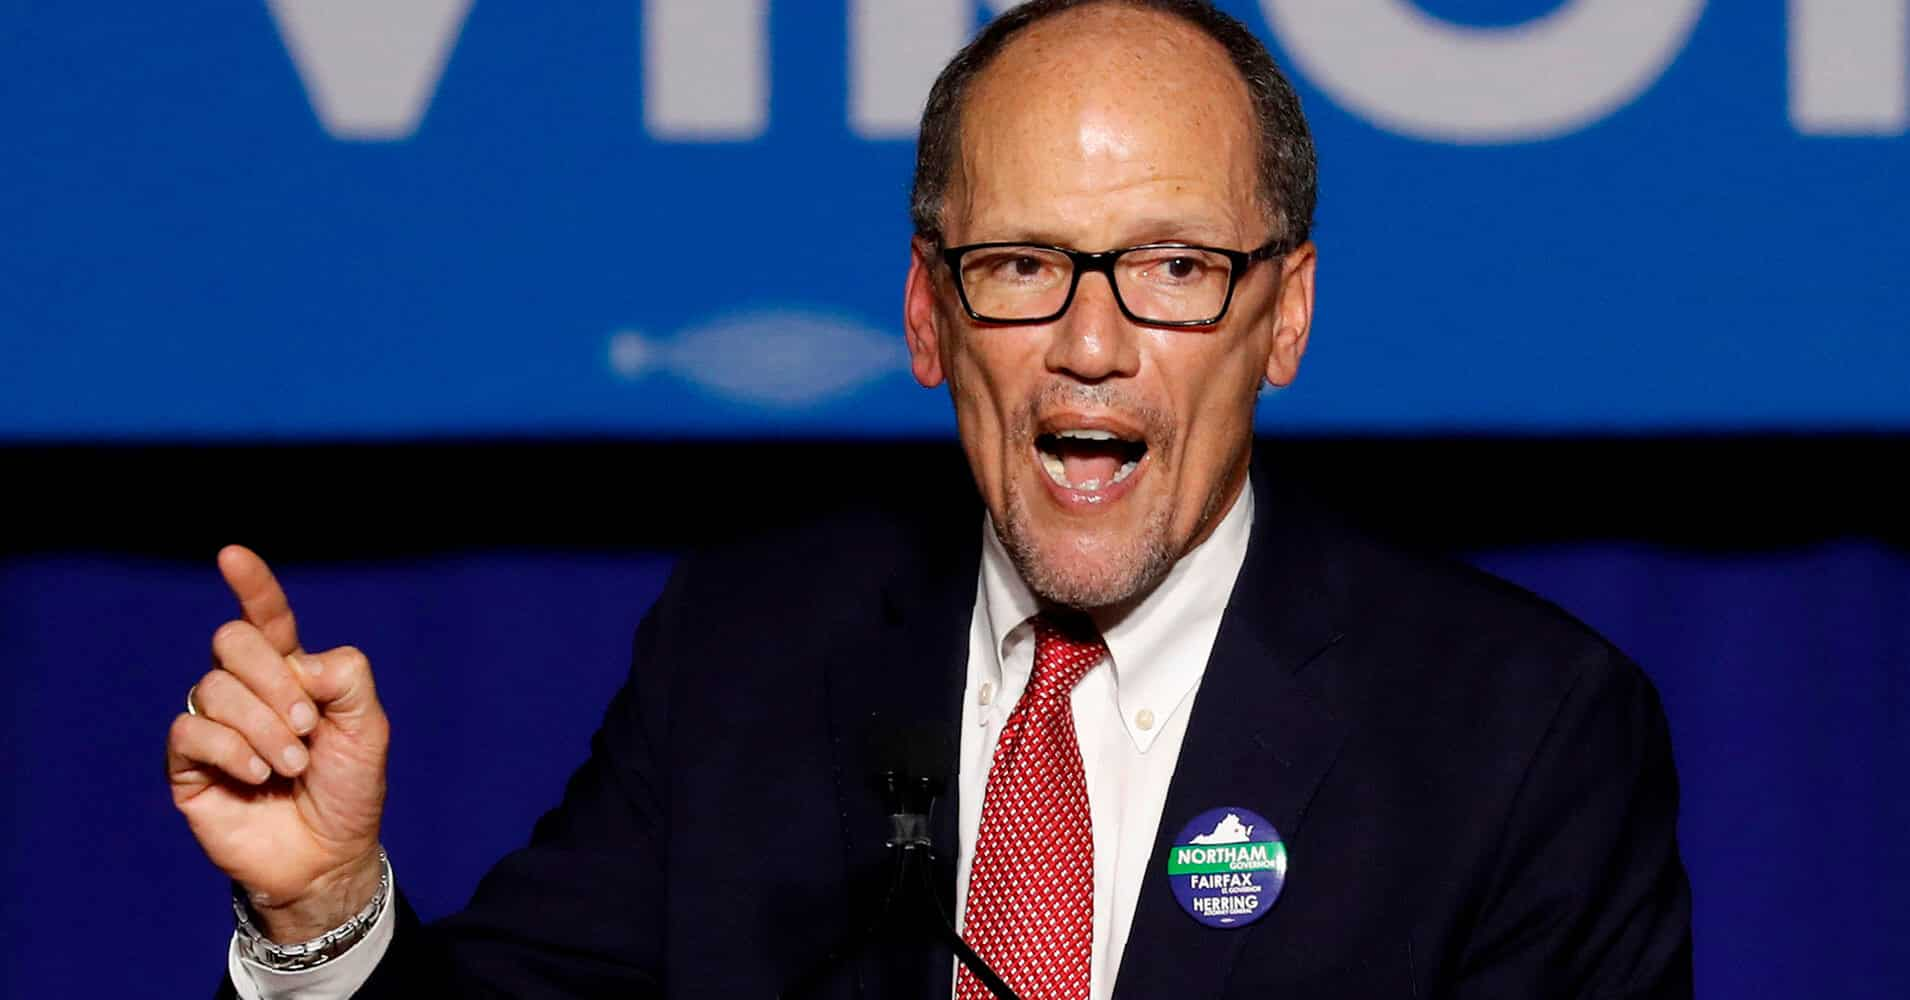 DNC Chairman May Face Critical Pushback From His Contributors